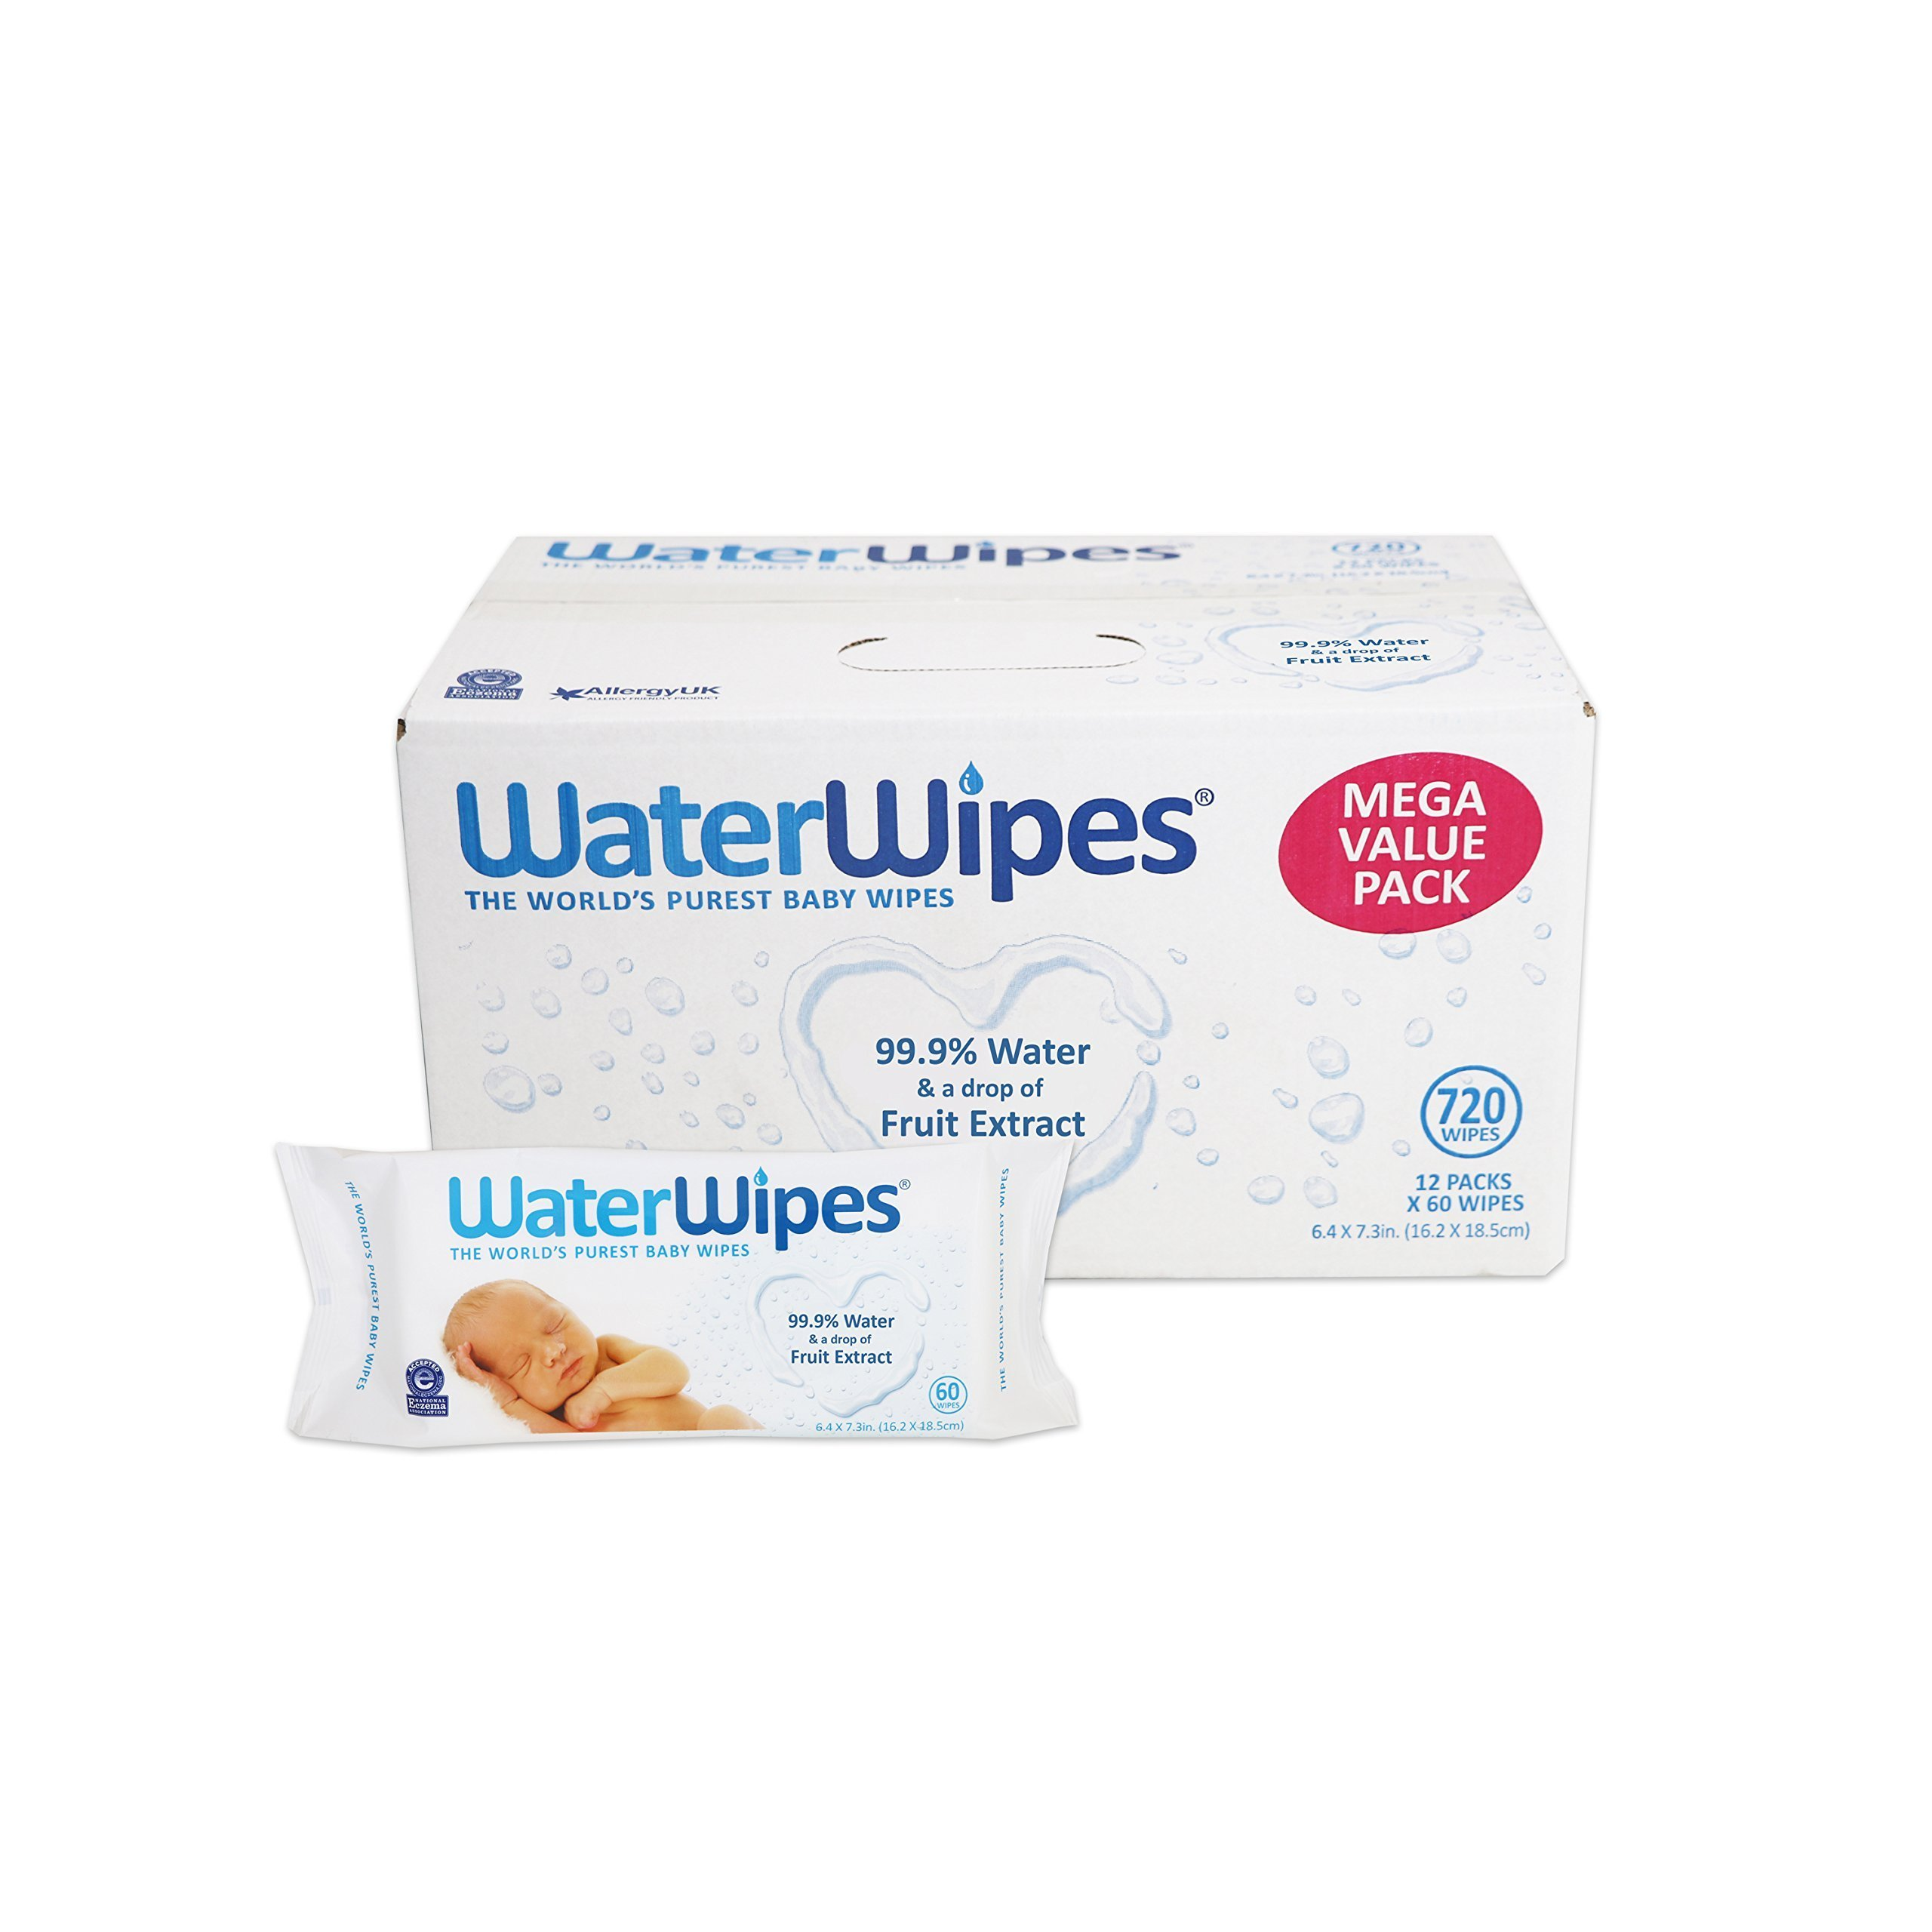 WaterWipes Sensitive Baby Wipes, 60 Count, 12 Packs